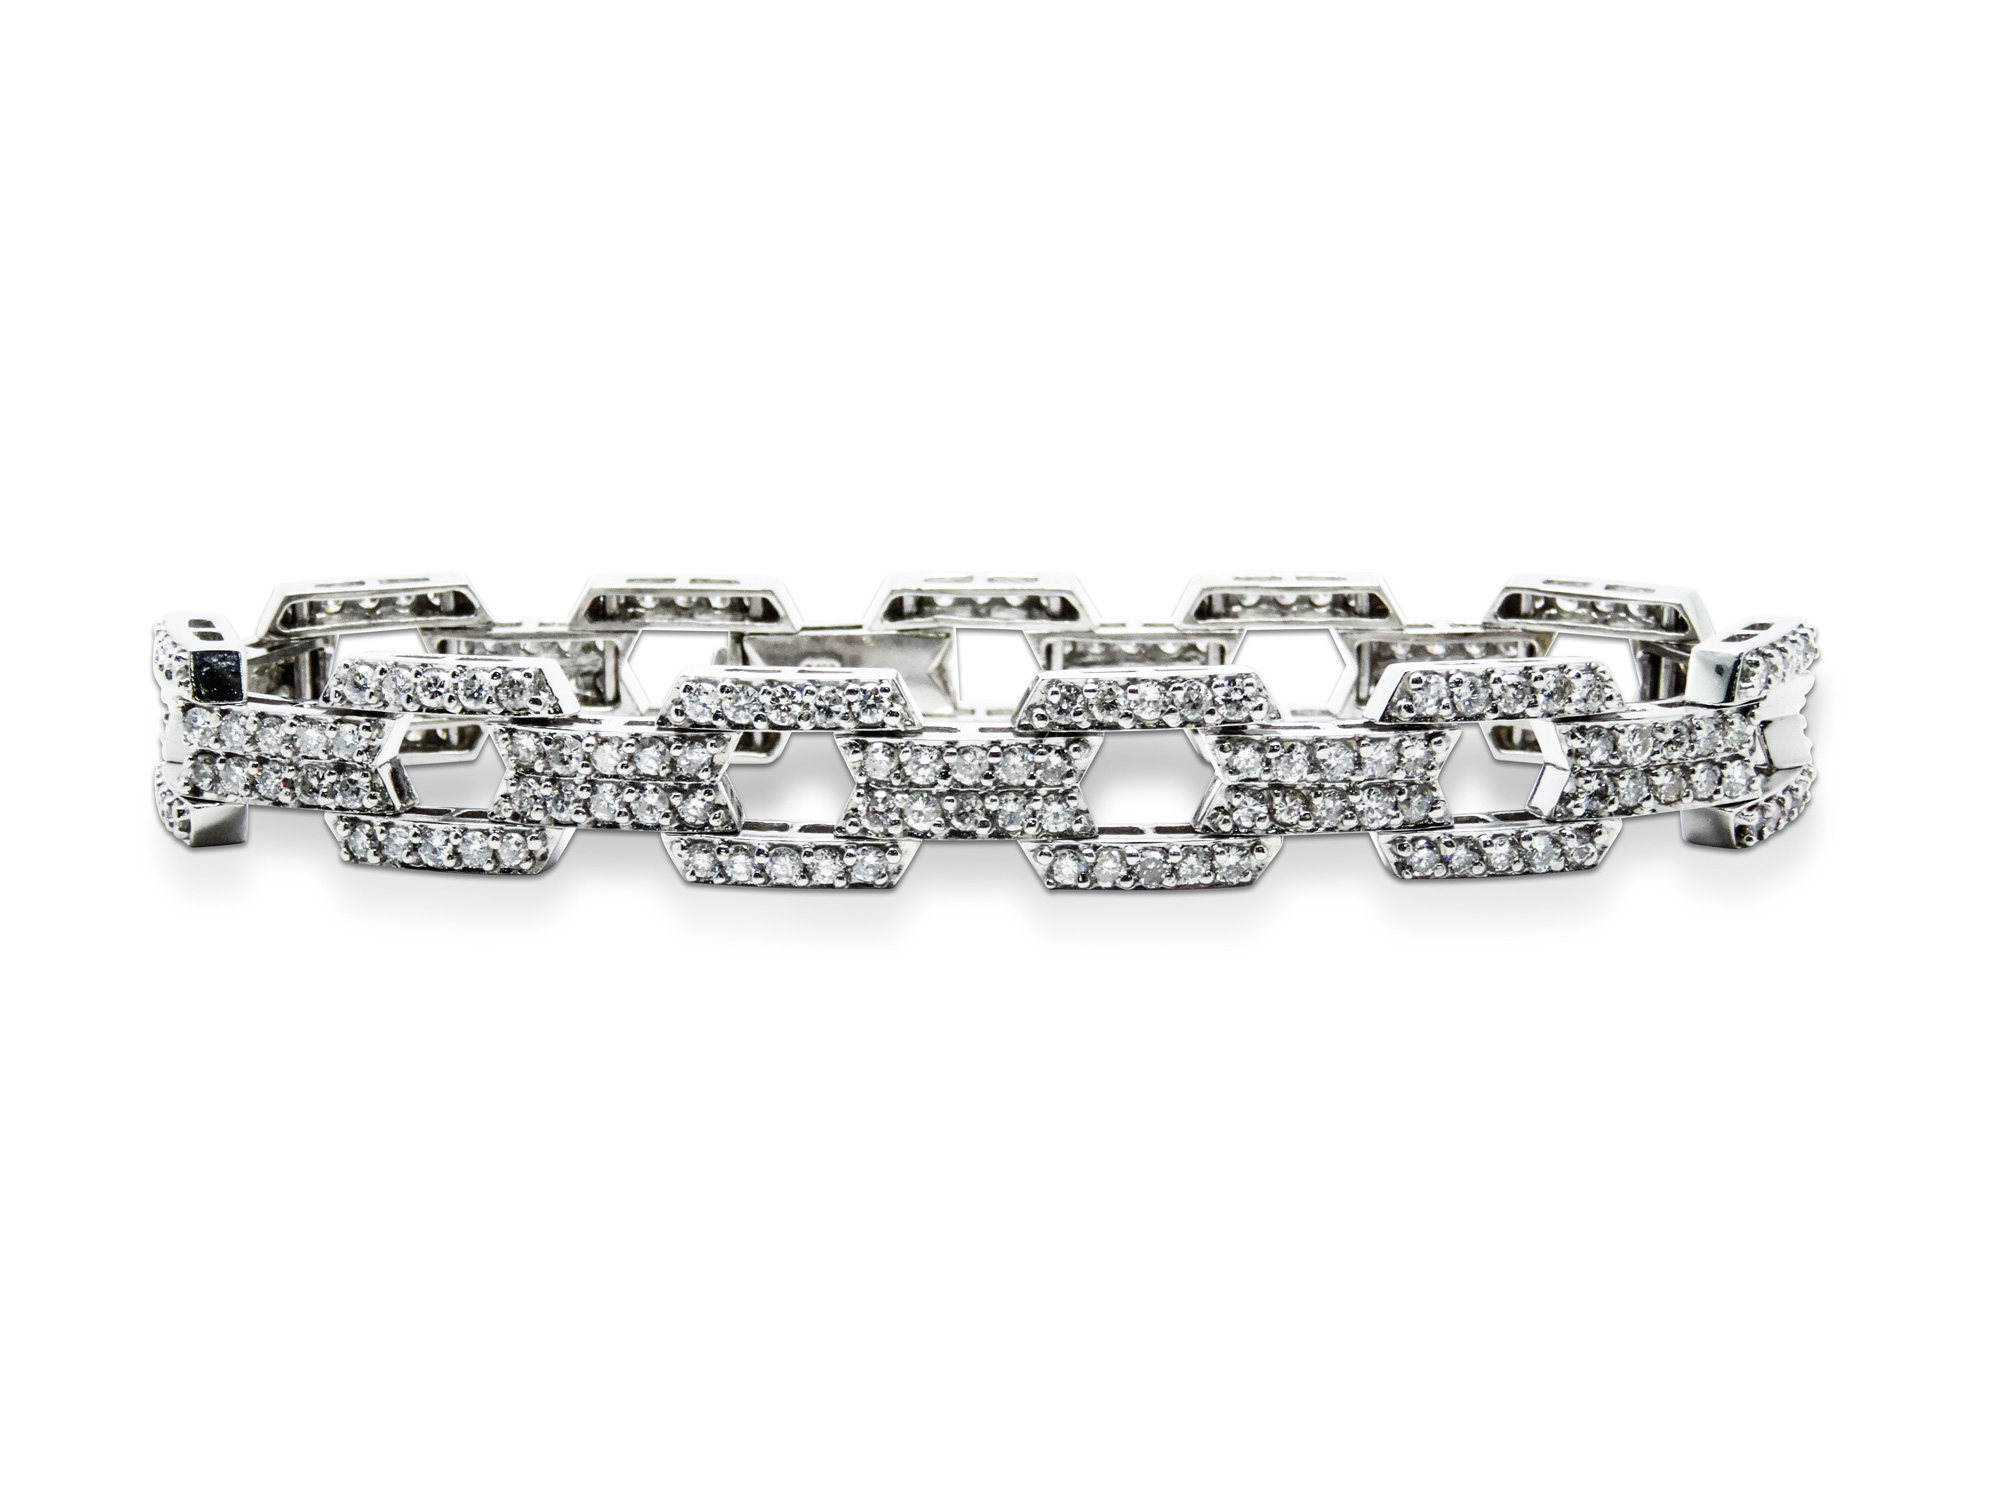 14k white gold bracelet with 4.90ct of diamonds